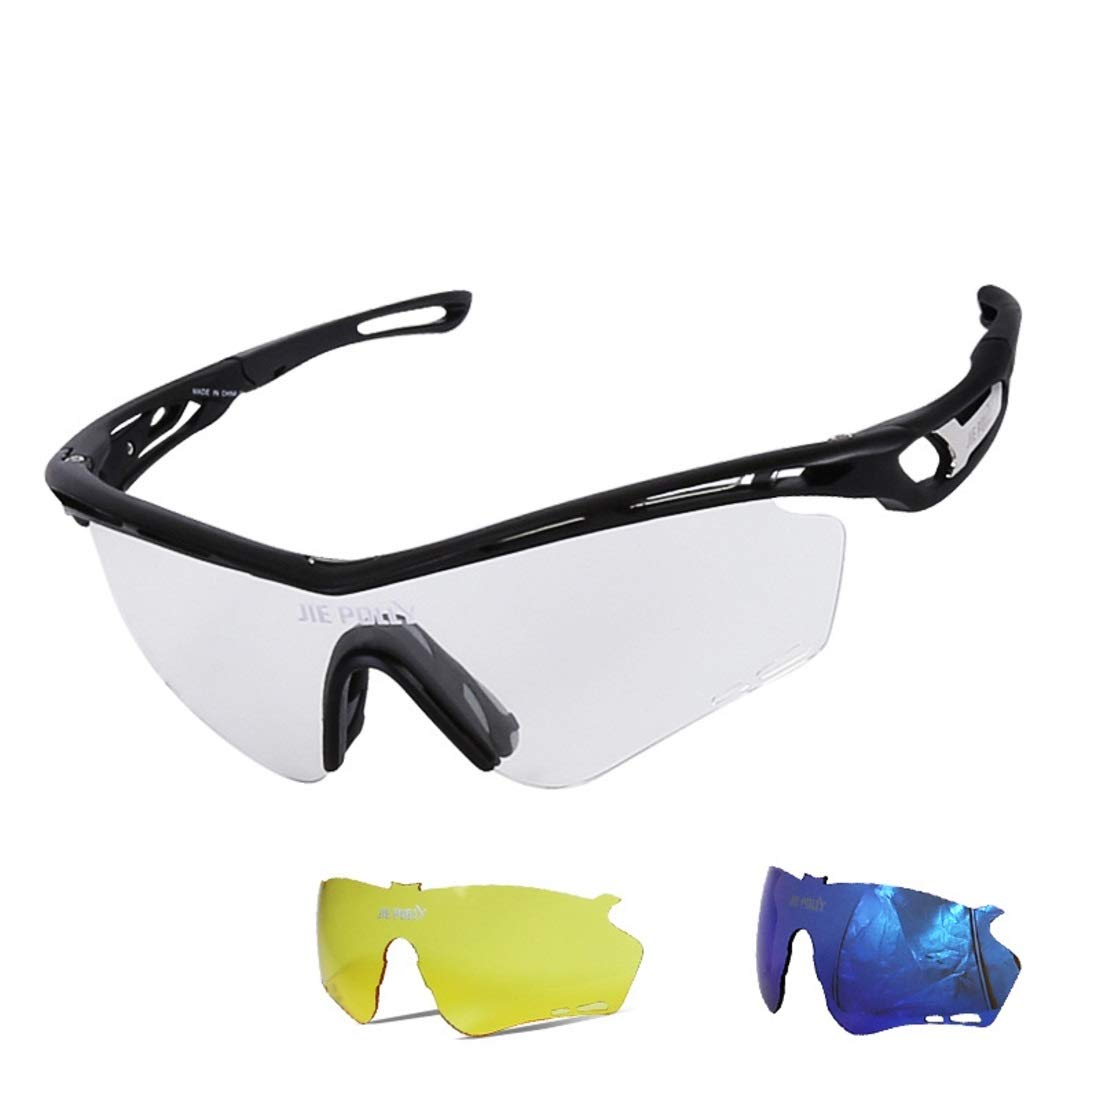 D Sinngukaba Mountain Cycling Glasses for Men and Women Outdoor Sports Equipment Wind and Dust Dust Eye Glasses for Women Men (color   E)